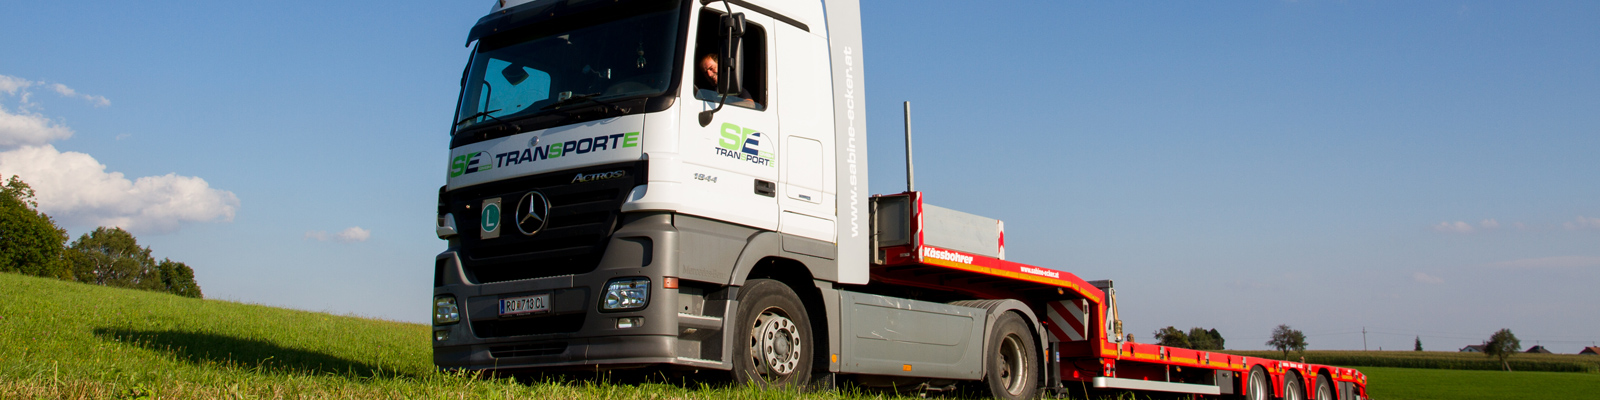 Sabine Ecker Transport - Güter, Sondertransport